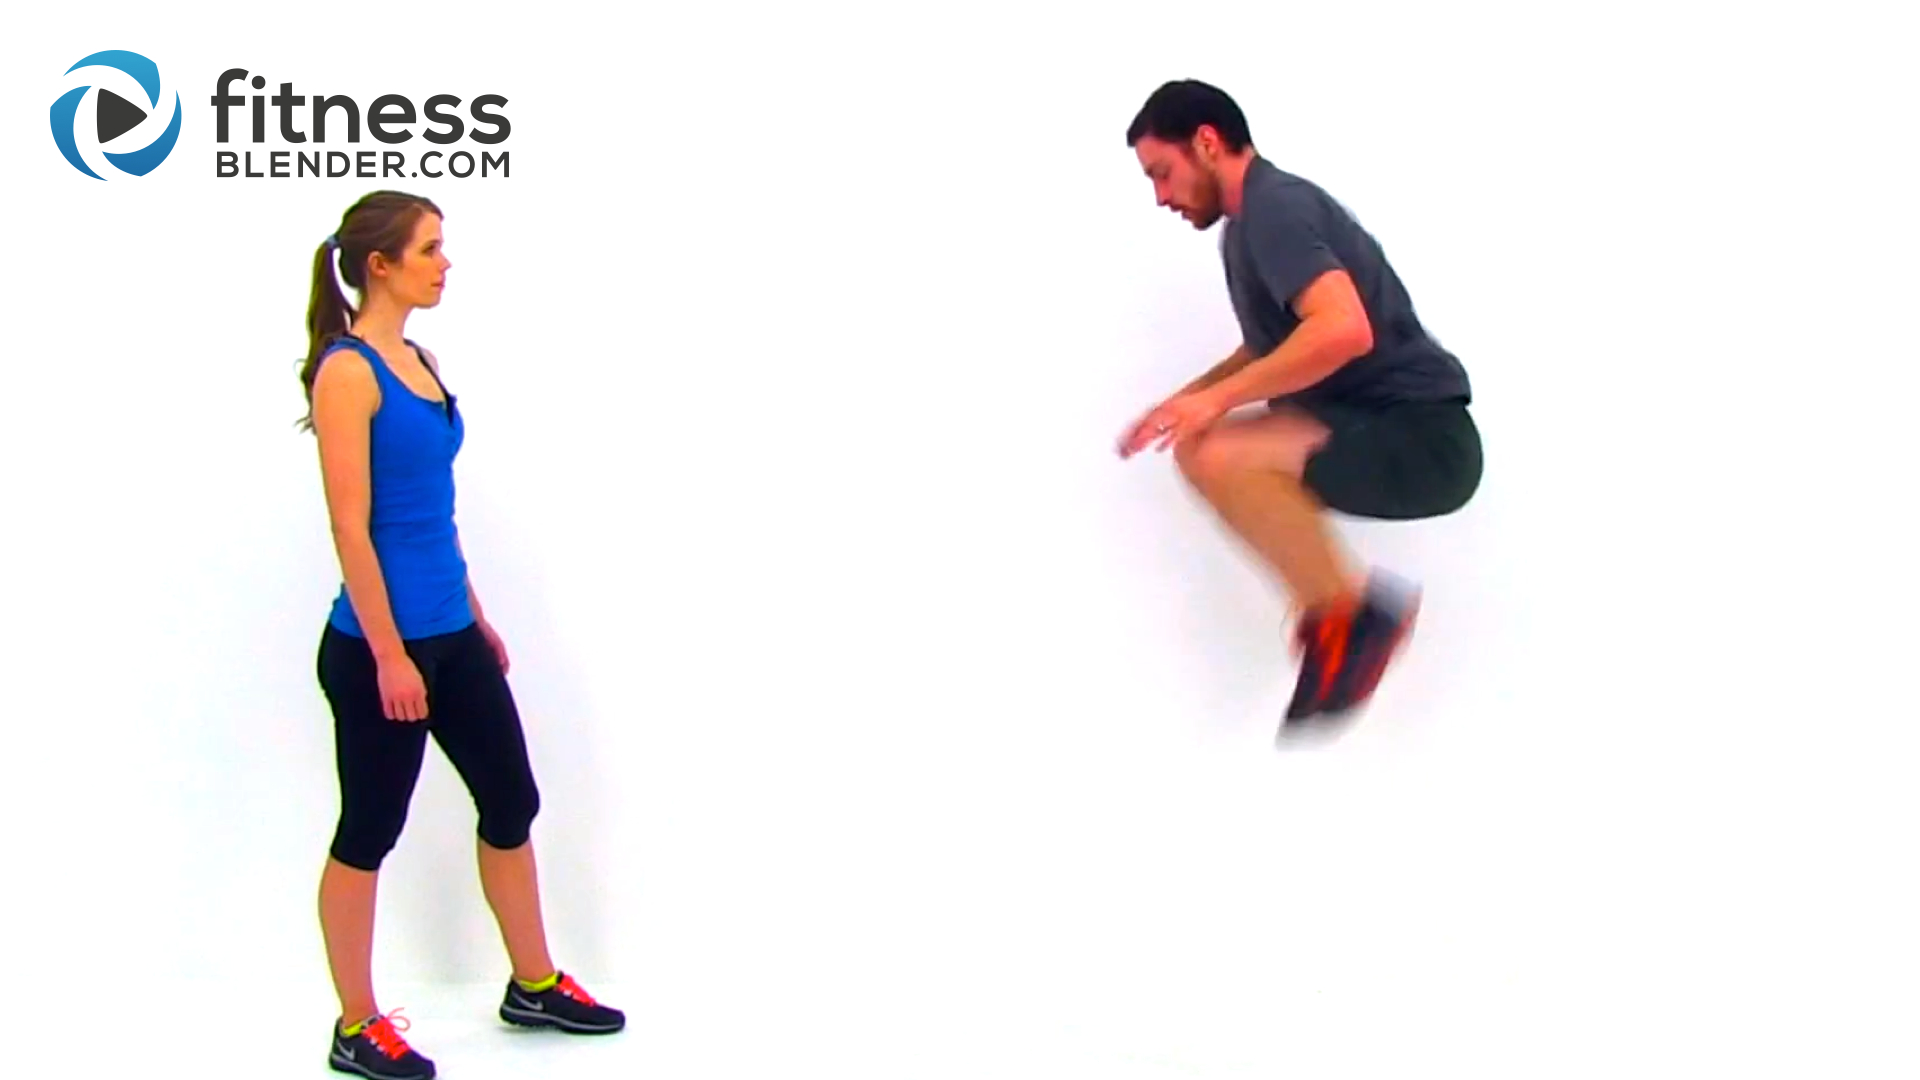 Jumping Fitness When I Say Jump Hiit Cardio Fun Brutal Bodyweight